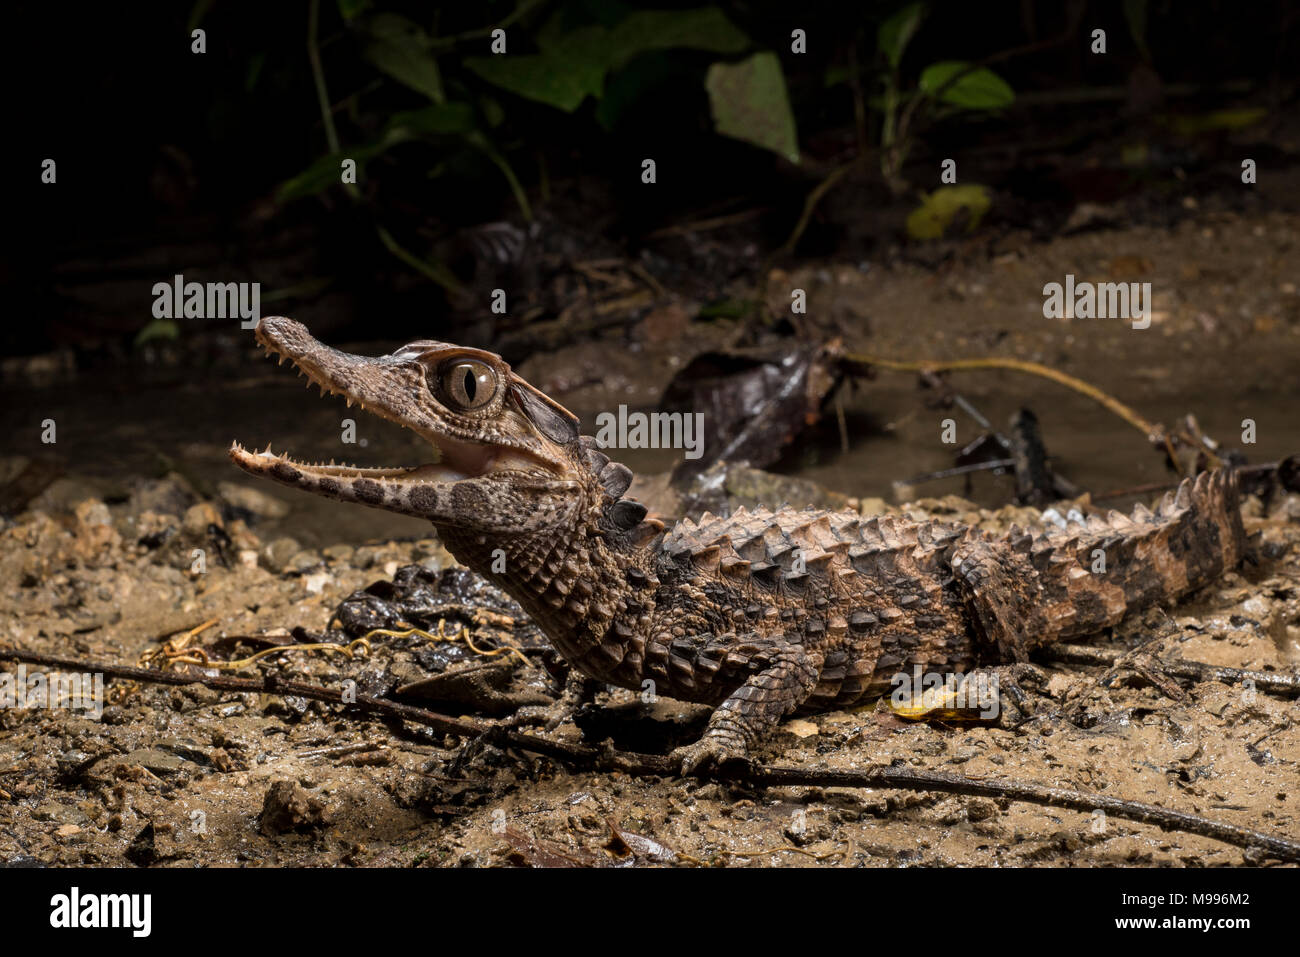 A smooth fronted caiman (Paleosuchus trigonatus), a species from the Amazon, does his best to appear scary and intimidating. - Stock Image